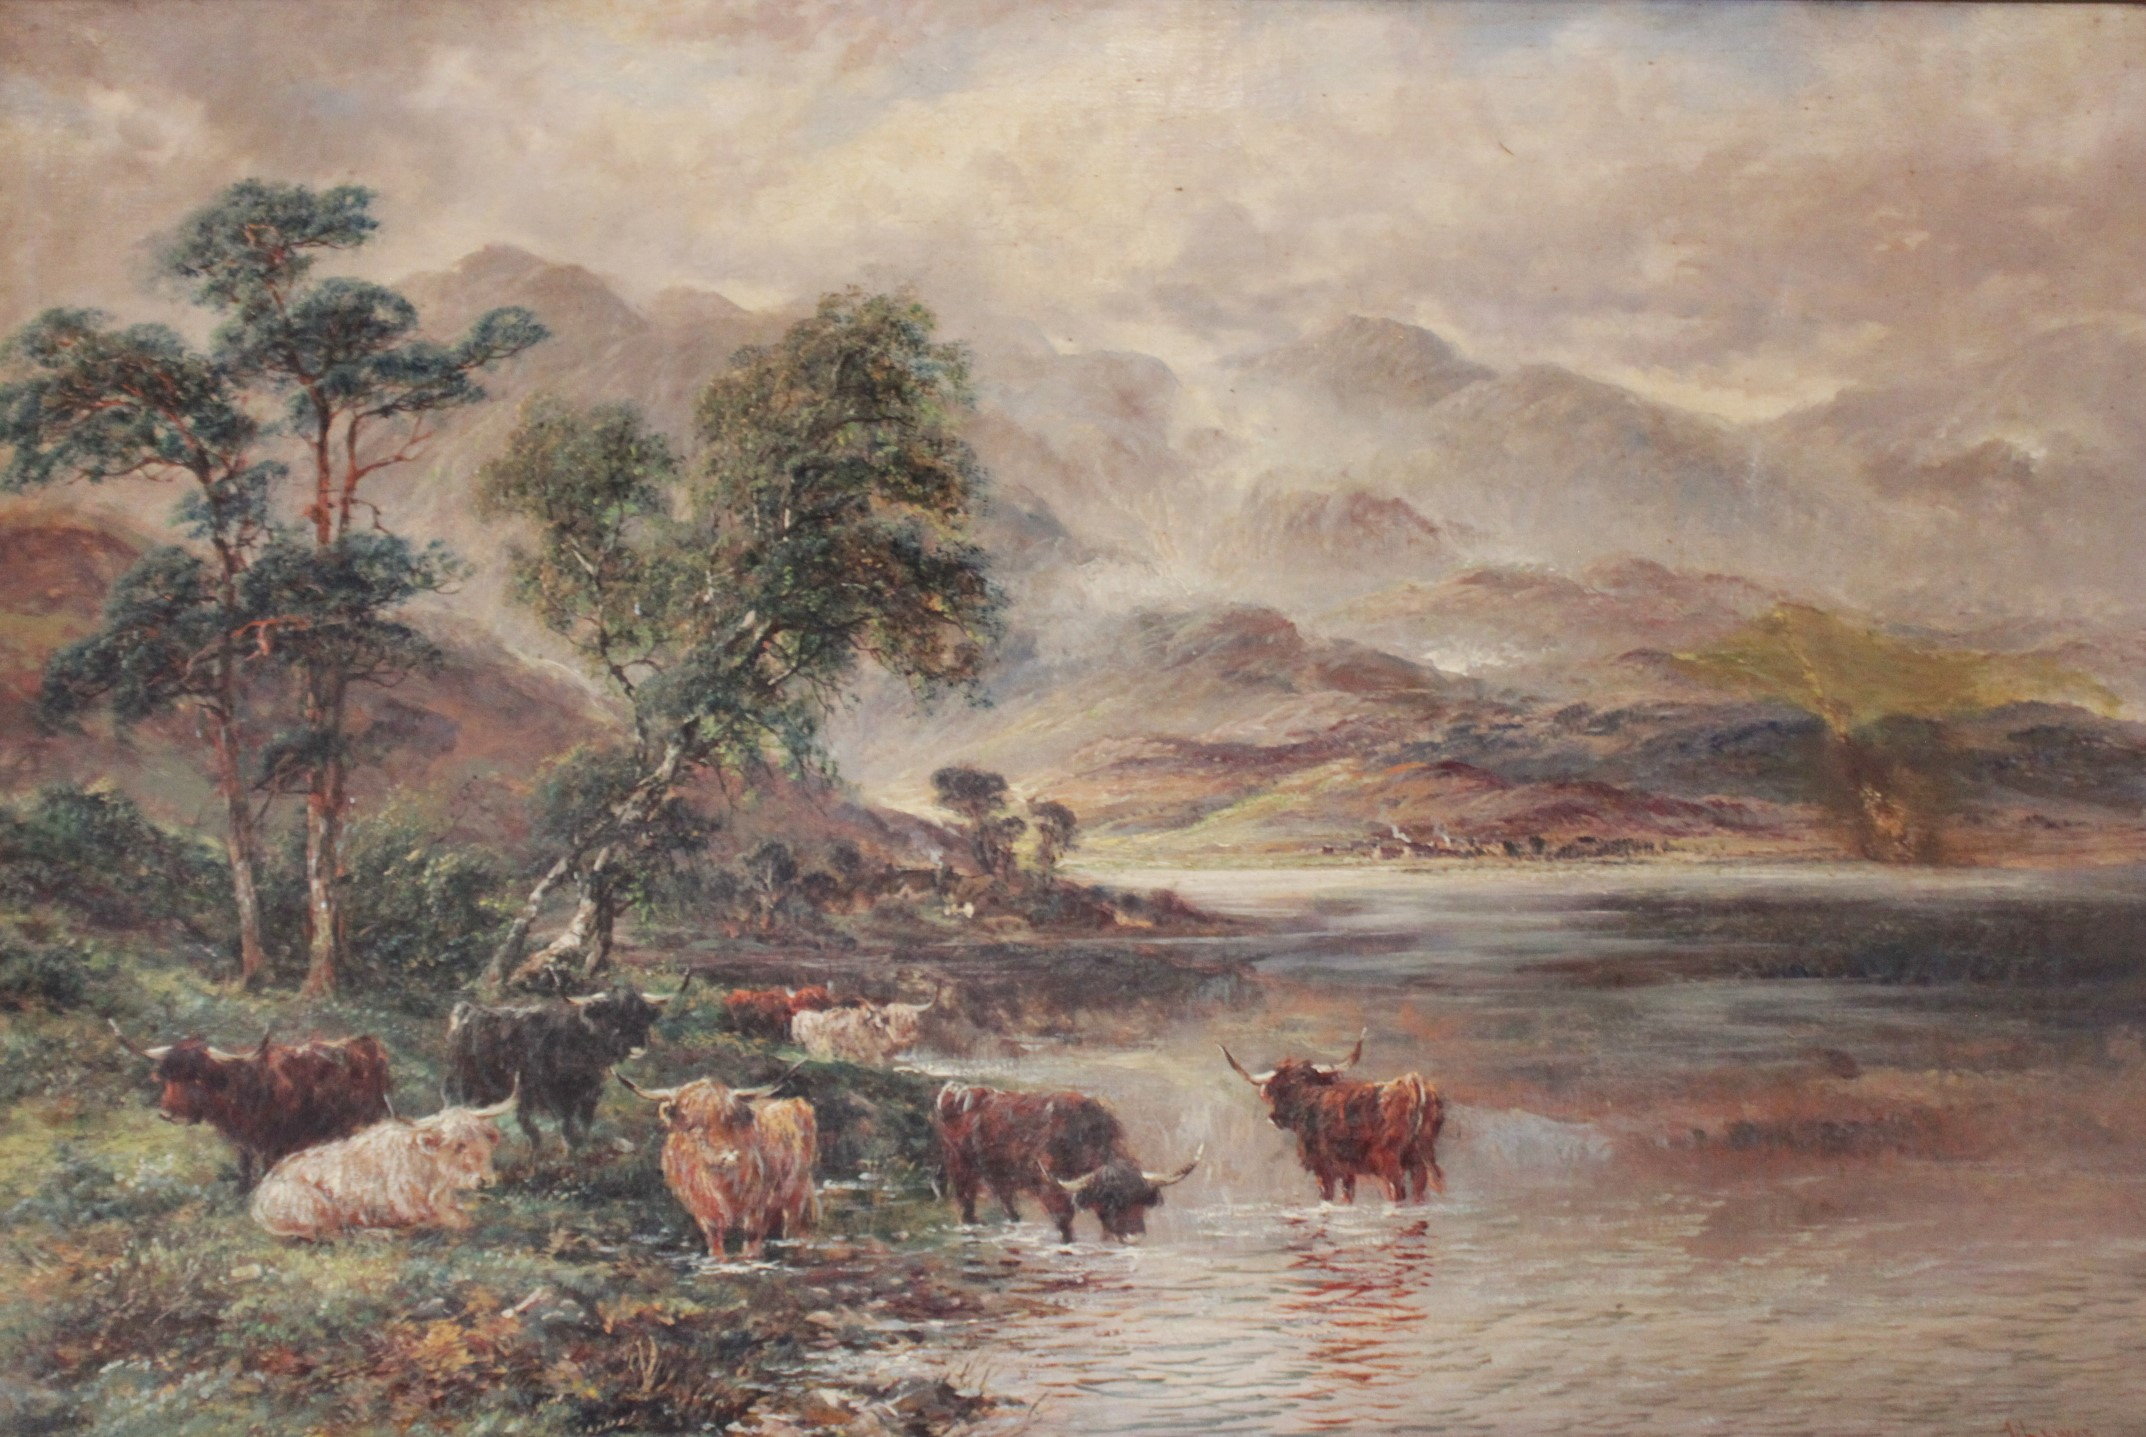 J. Lewis (English school, 19th century), Two mountainous landscapes with highland cattle, Oil on - Image 2 of 4